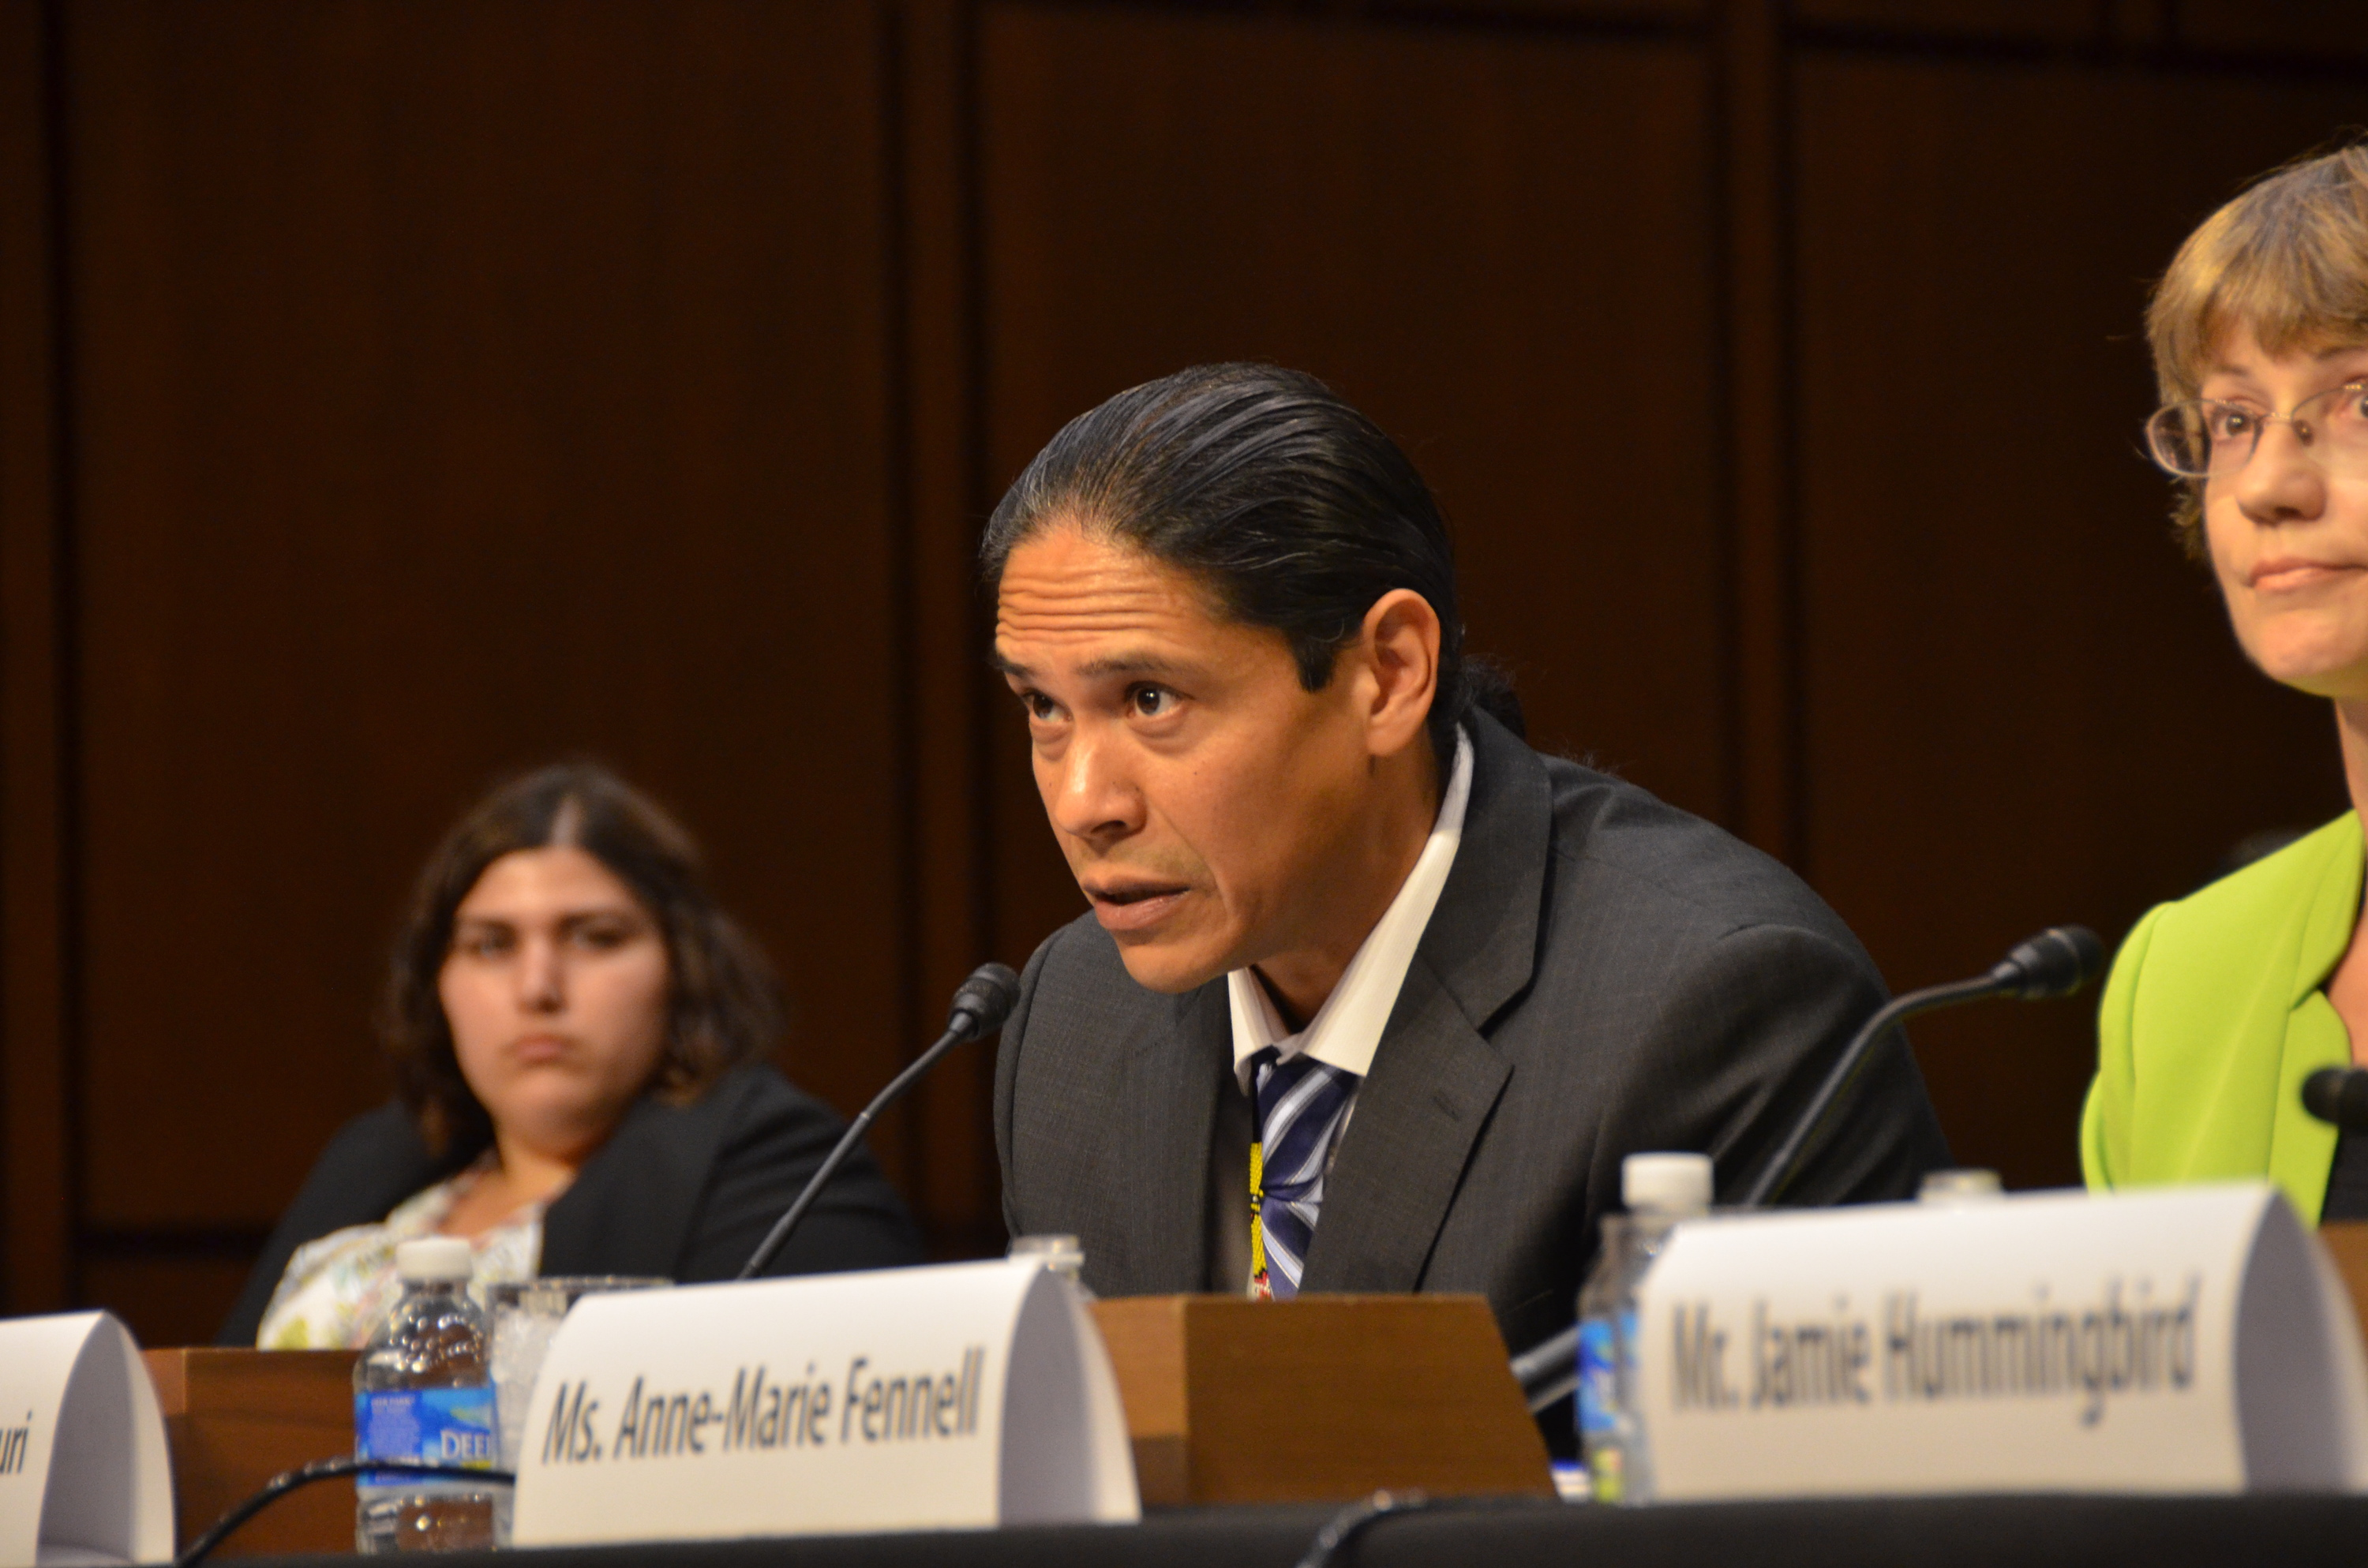 Senate Committee on Indian Affairs schedules hearing on tribal gaming industry